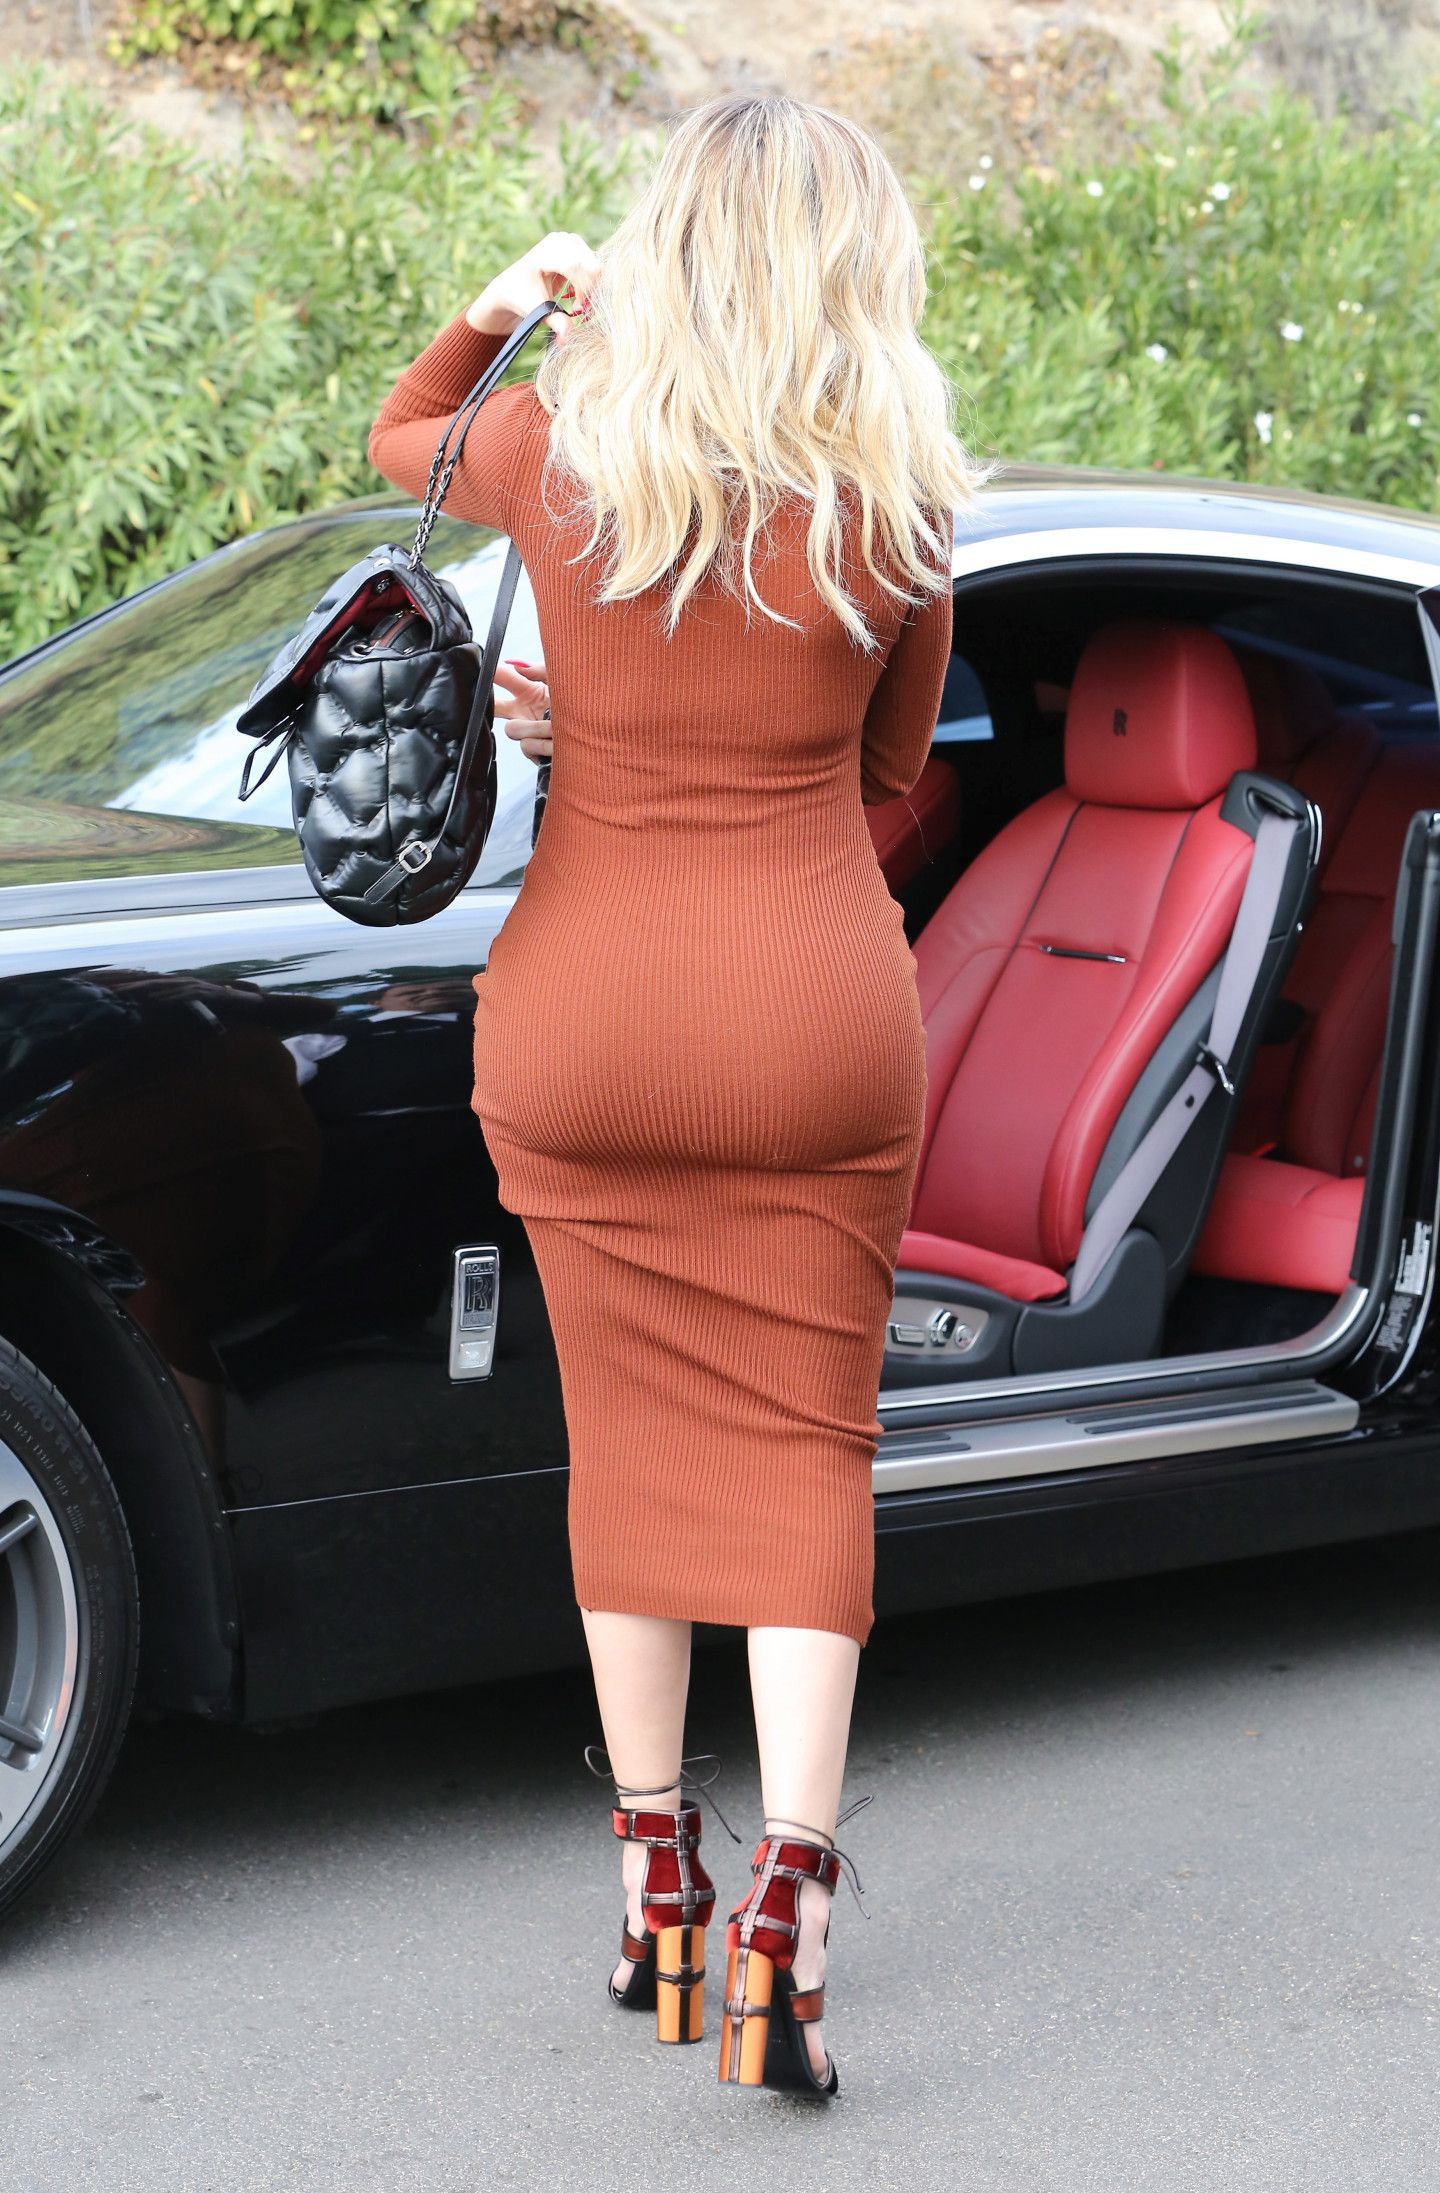 Khloe Kardashian rivals big sister Kim showing off her bum in a skintight dress